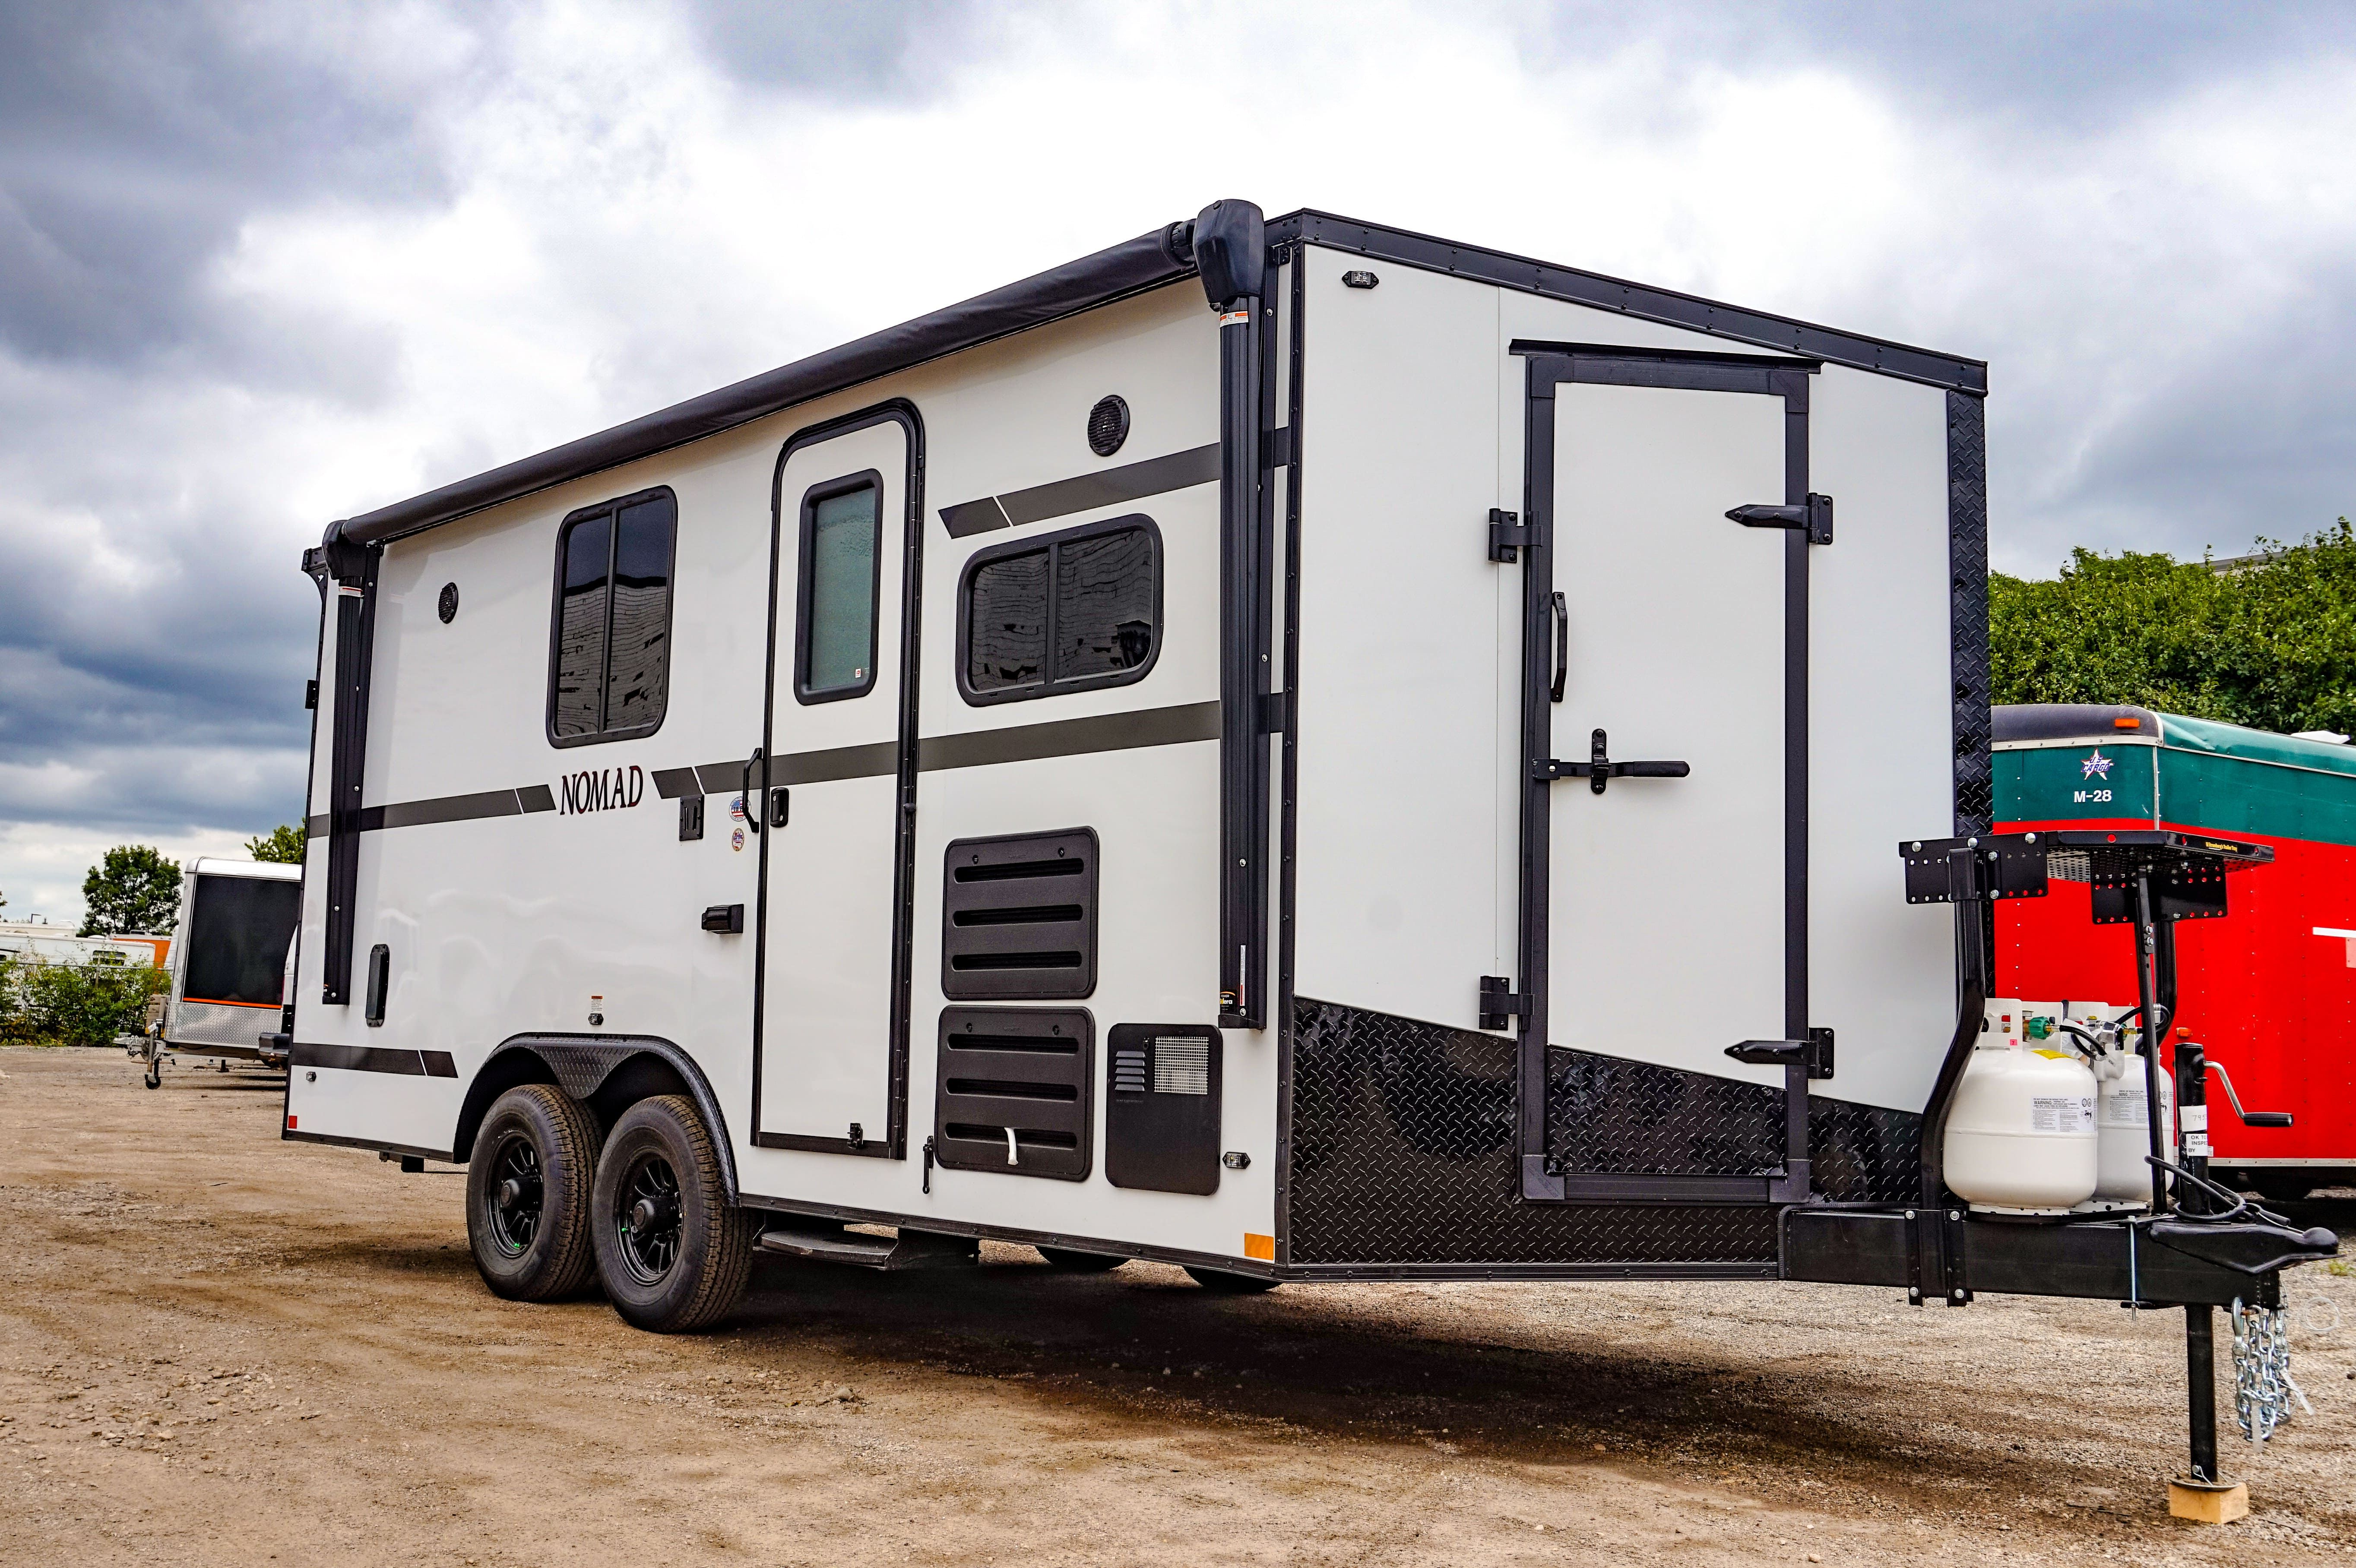 18 Stealth Nomad Toy Hauler White In 2020 Toy Hauler Camper Air Conditioner Cargo Trailer Conversion